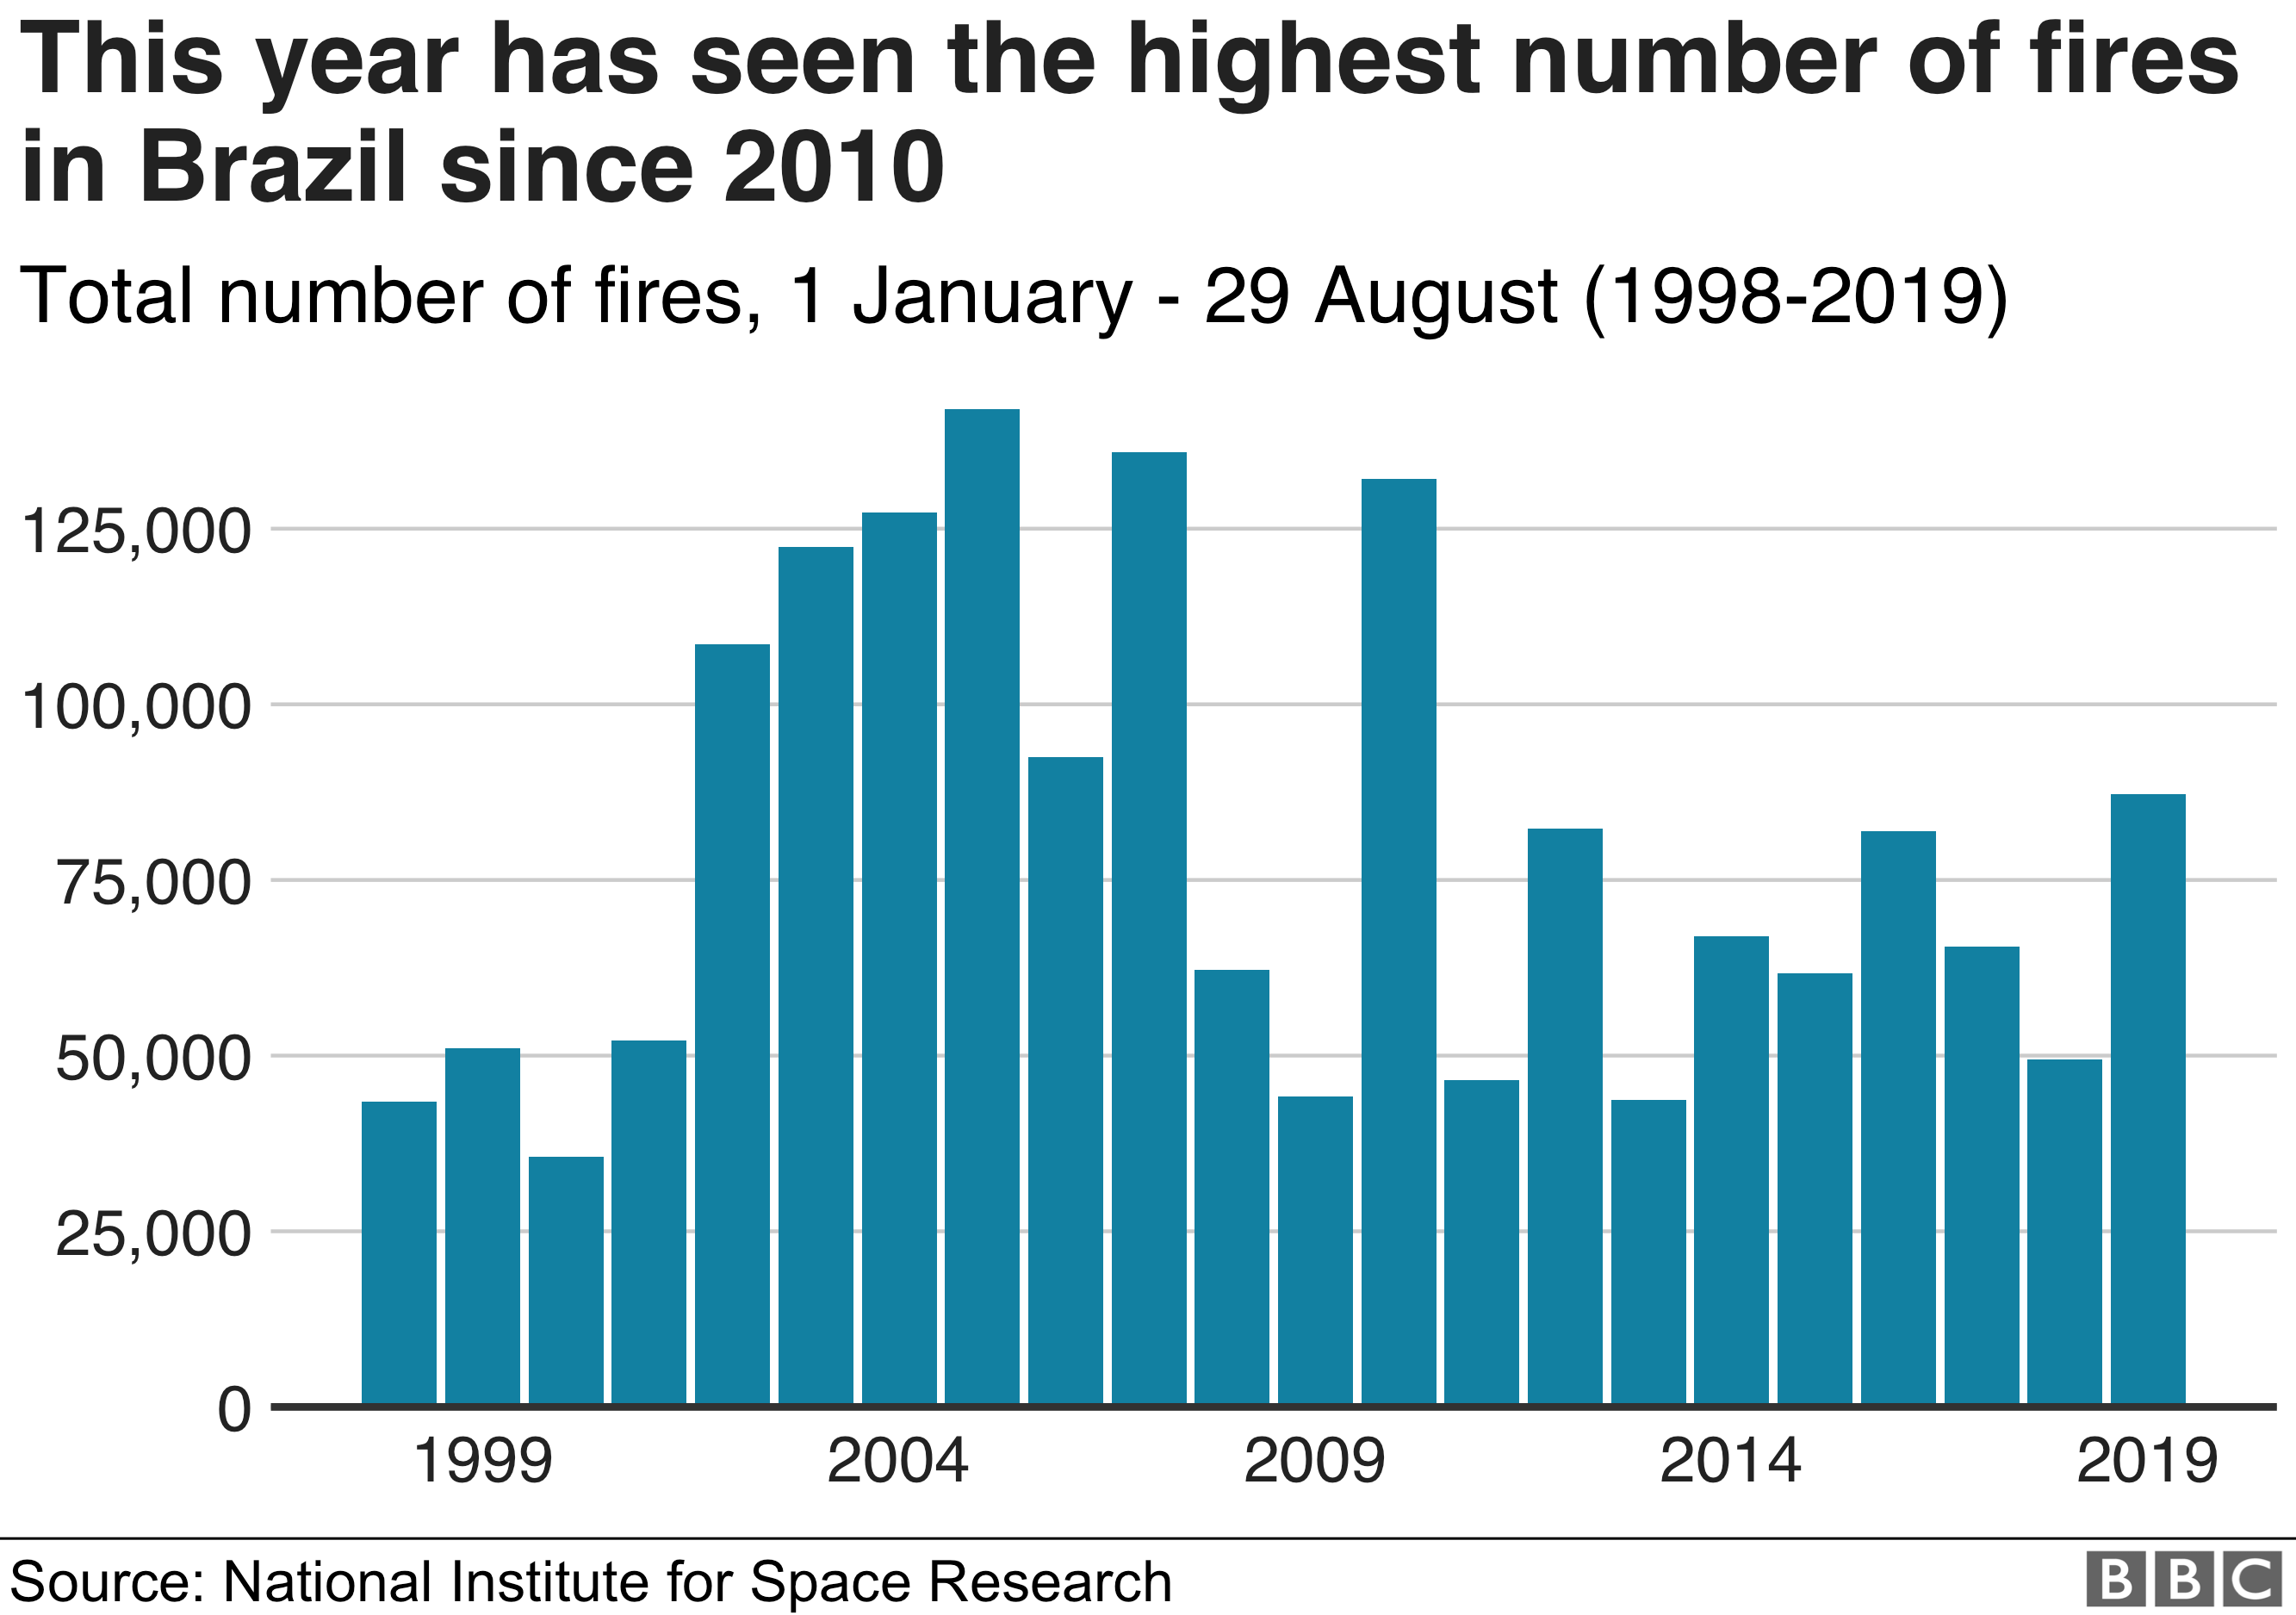 Chart showing the number of fires in Brazil each year